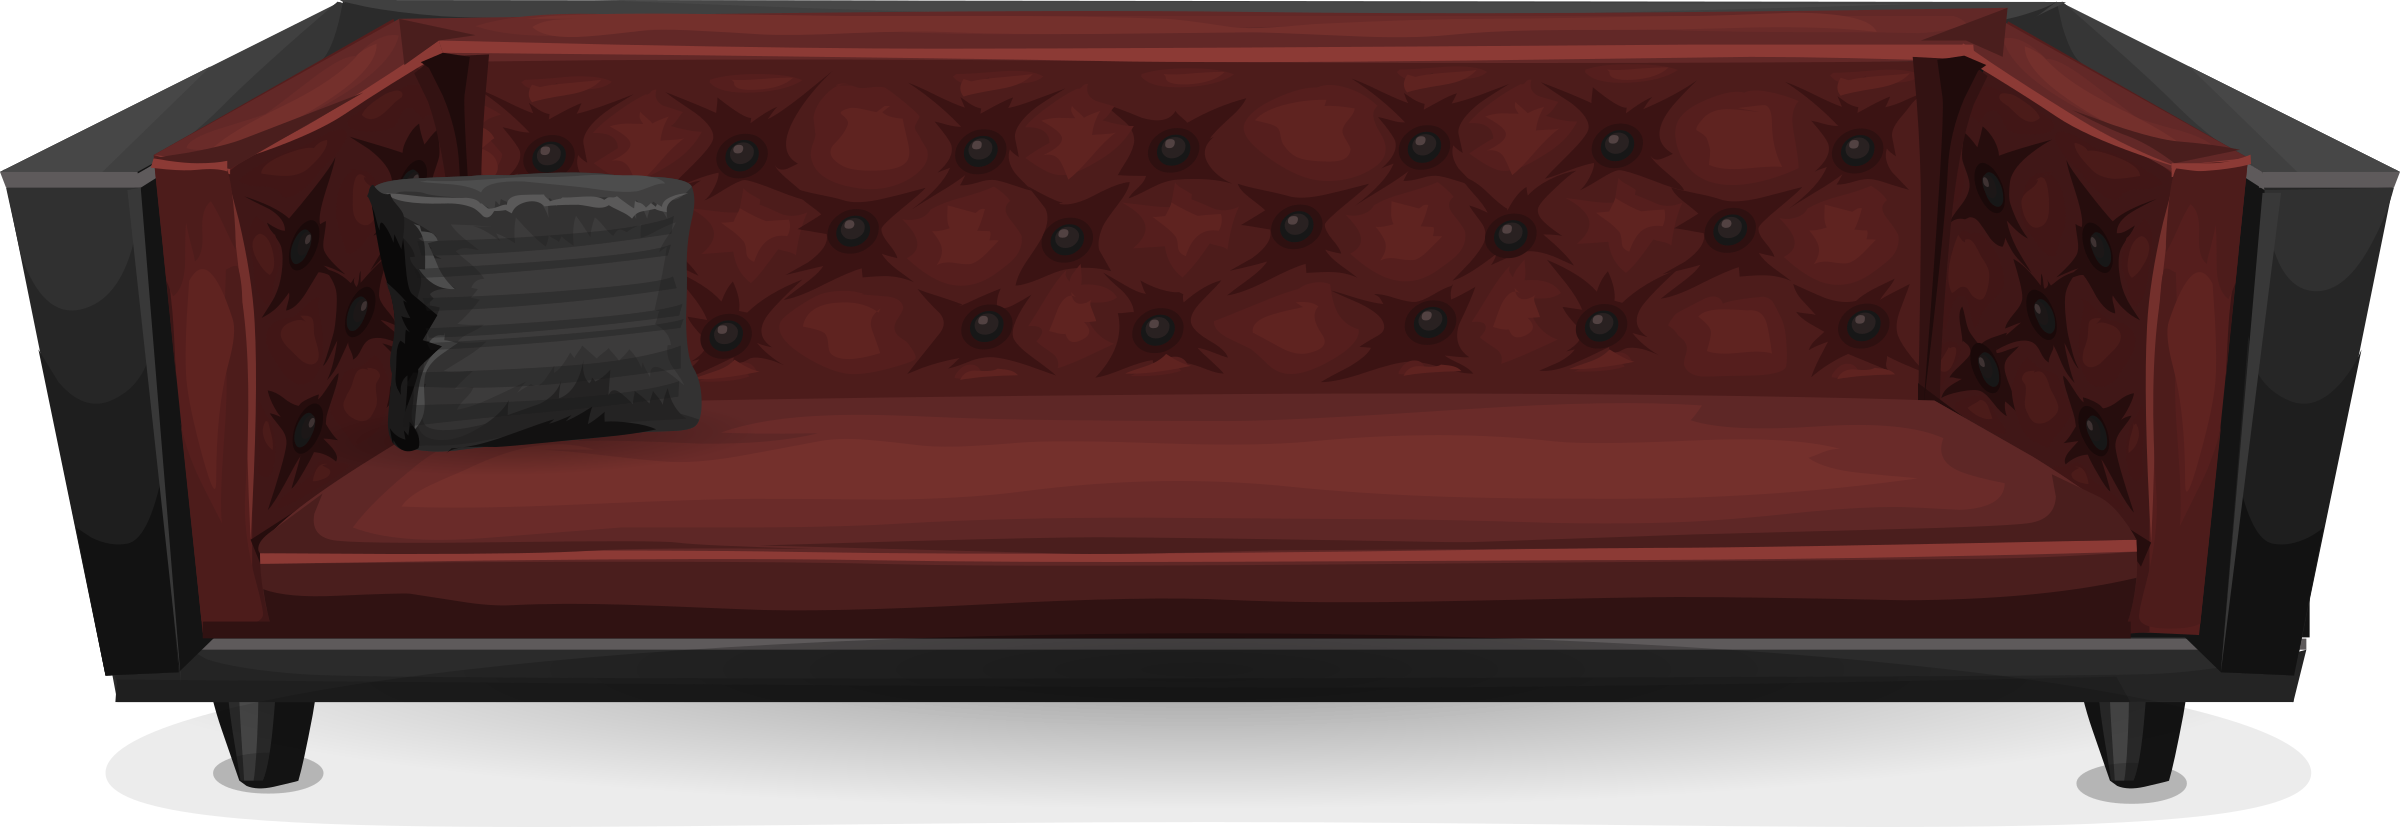 Dark sofa from glitch. Furniture clipart red couch